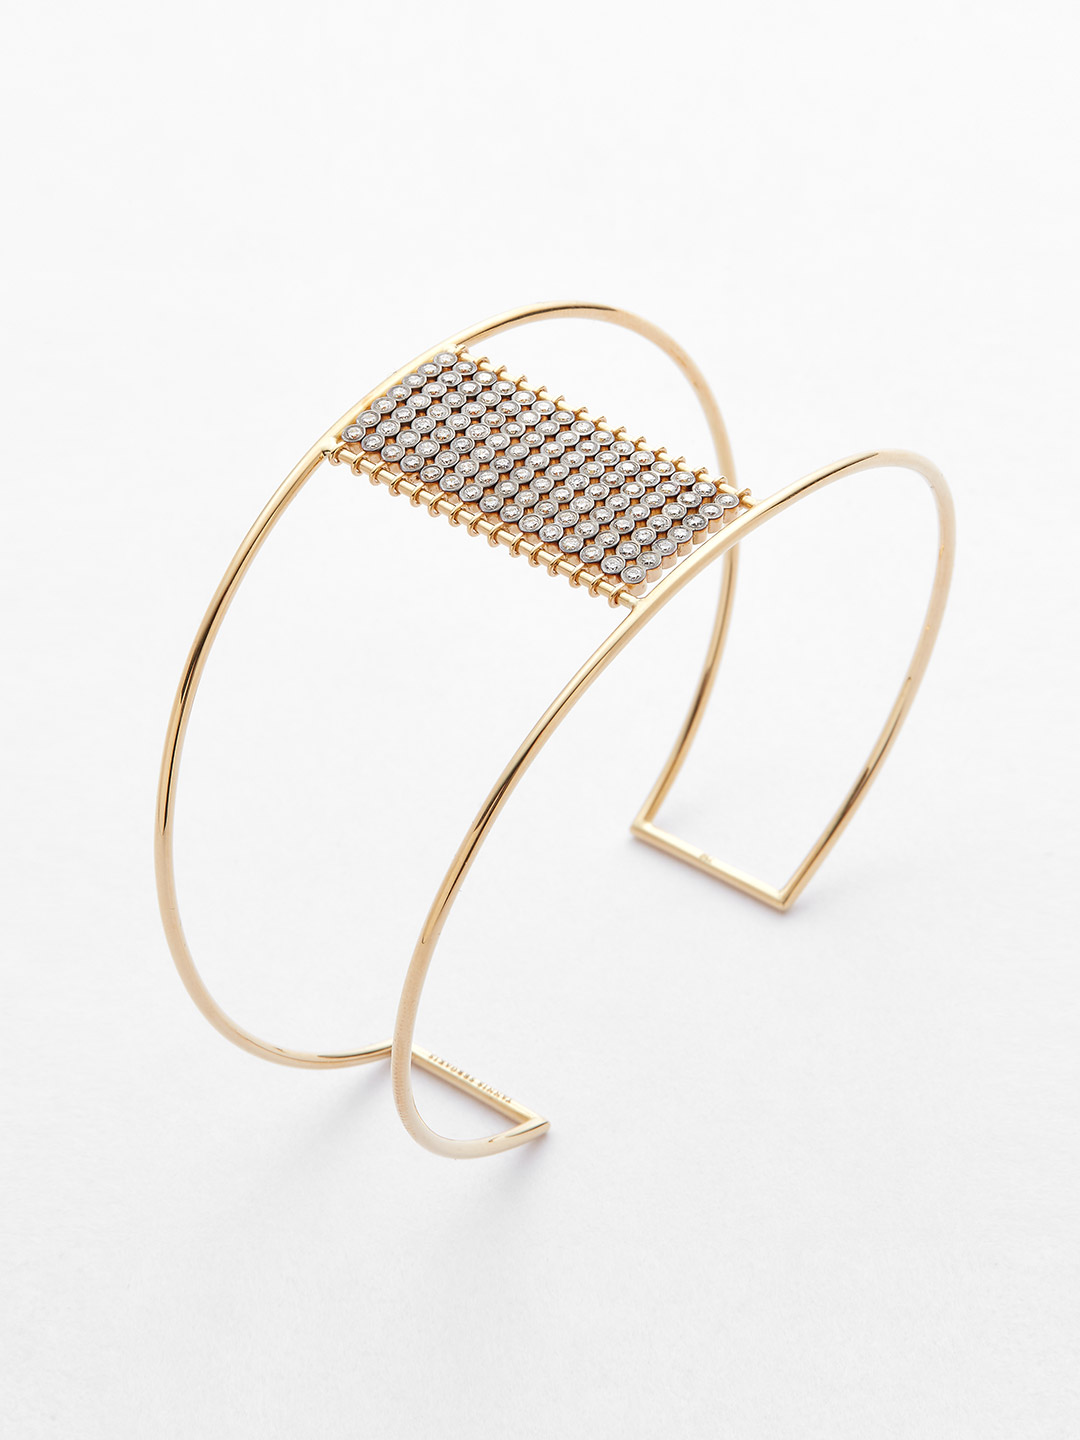 Diamond Bangle - 18K Yellow Gold